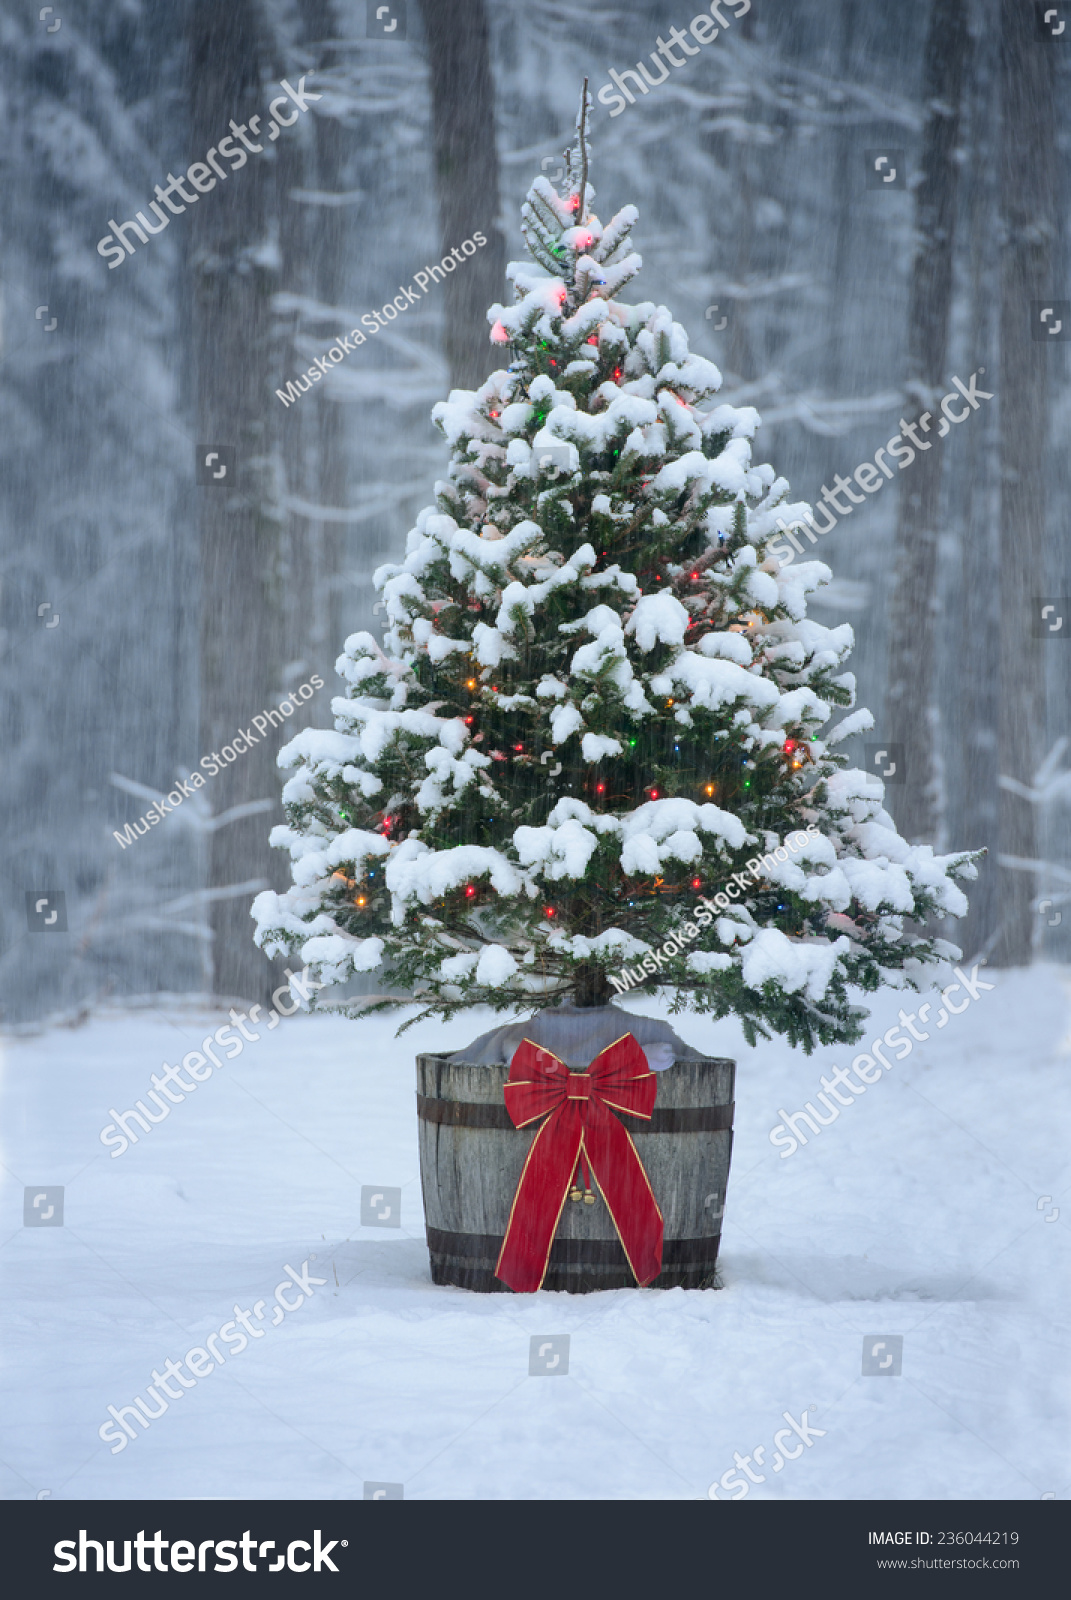 snow covered natural spruce christmas tree stock photo. Black Bedroom Furniture Sets. Home Design Ideas